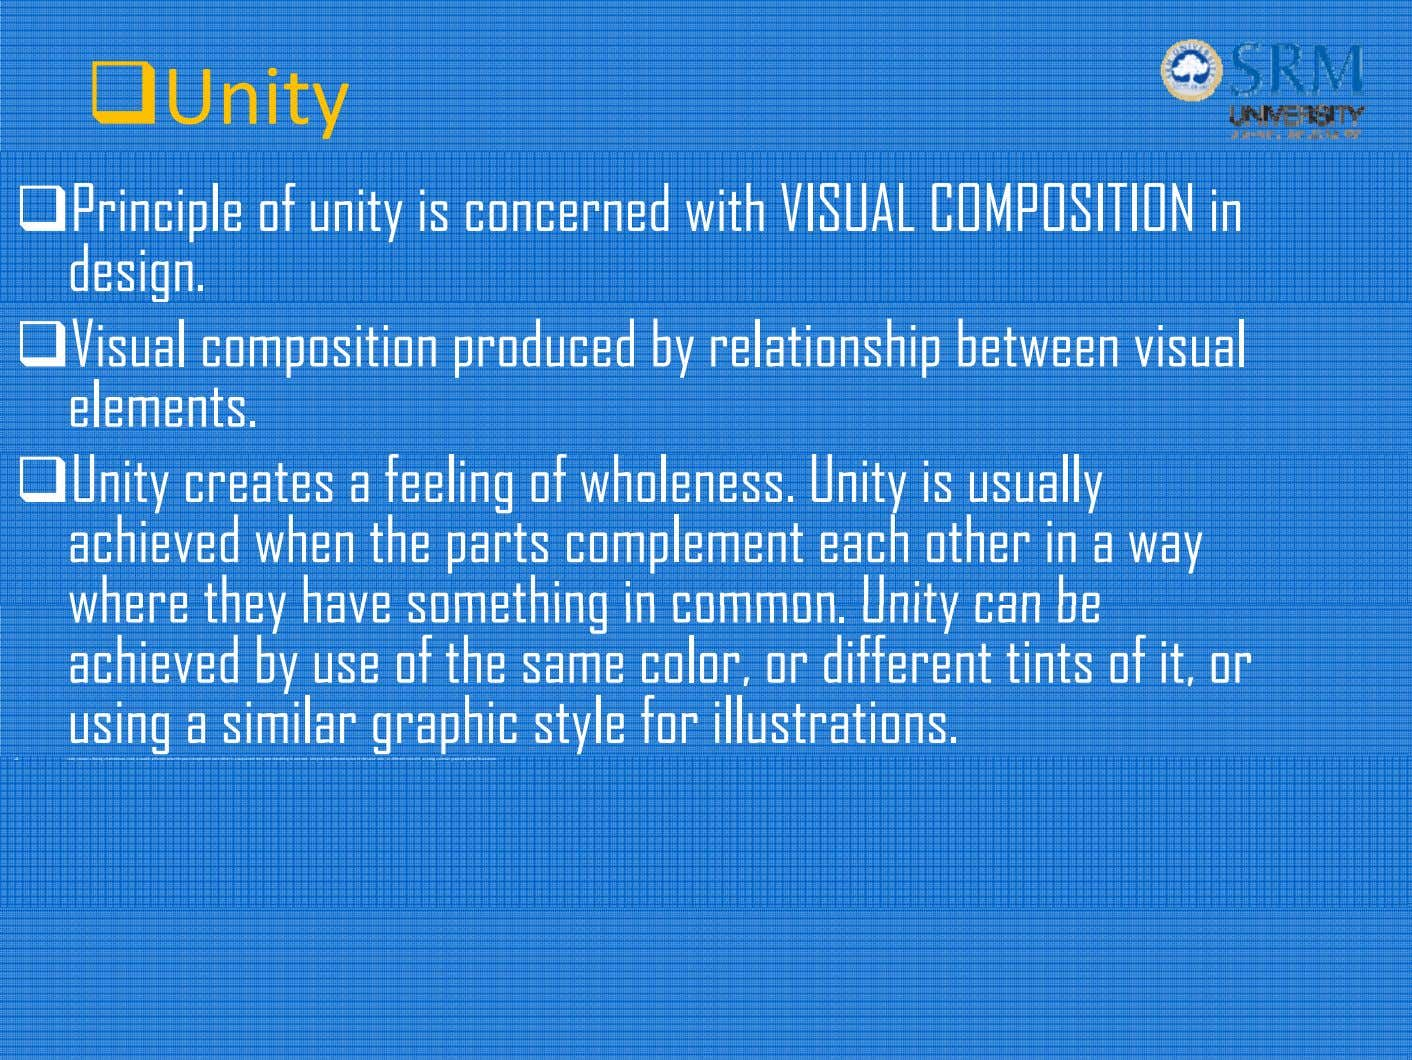 Unity Principle of unity is concerned with VISUAL COMPOSITION in design. Visual composition produced by